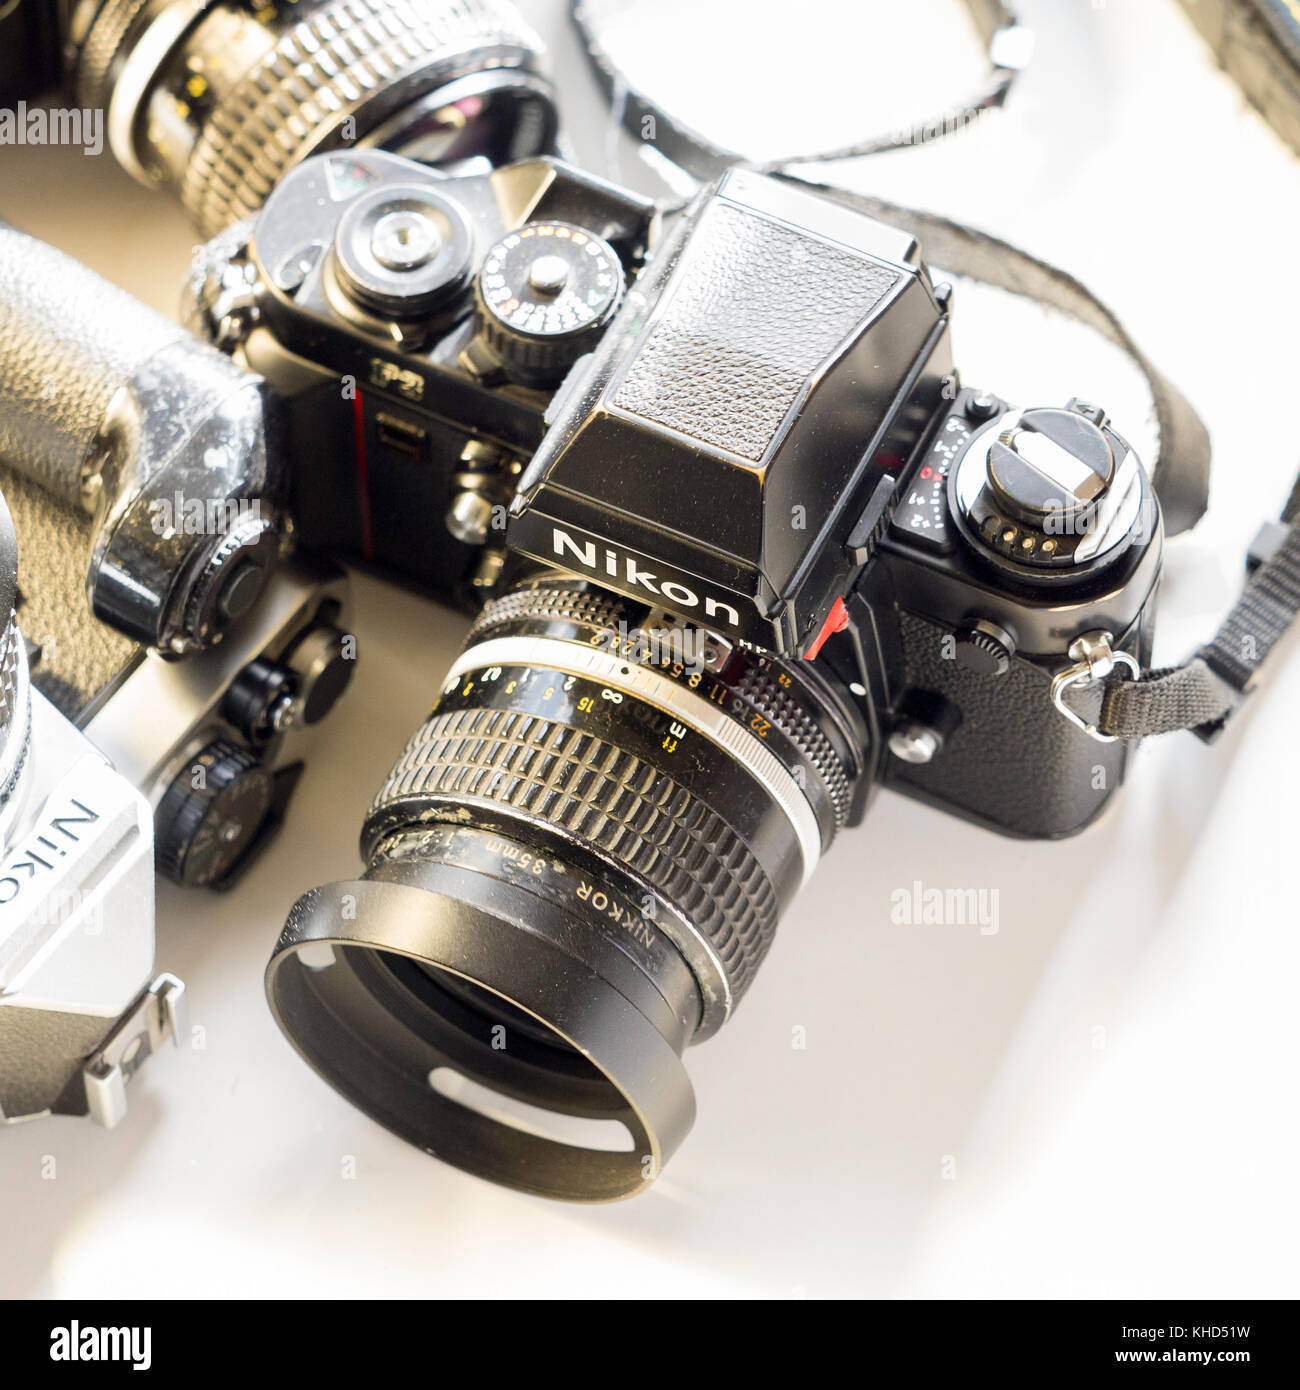 Nikon F3 single lens reflex 35mm professional film camera First launched in 1980 and remained in production until - Stock Image